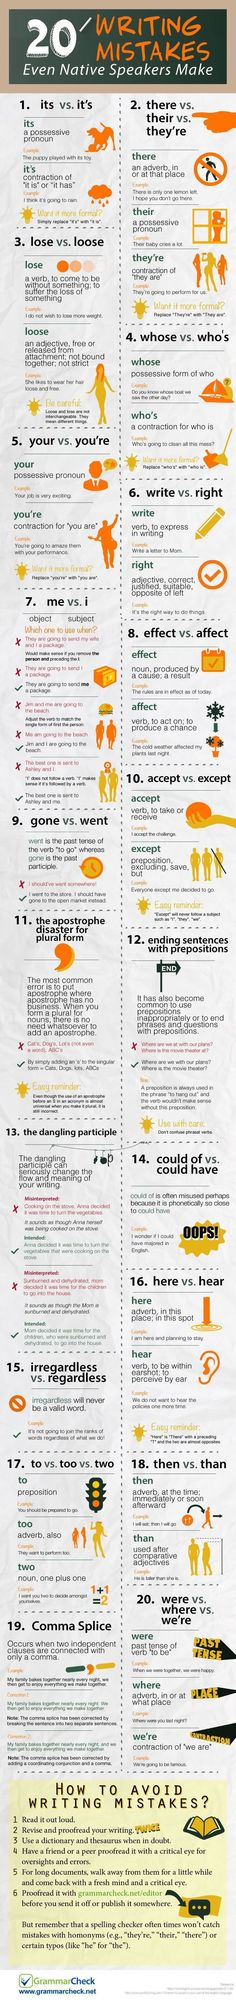 Online grammar editing tool Grammar Check has released the new infographic that lists writing English language writing mistakes. The list includes 20… #CollegeInfographics